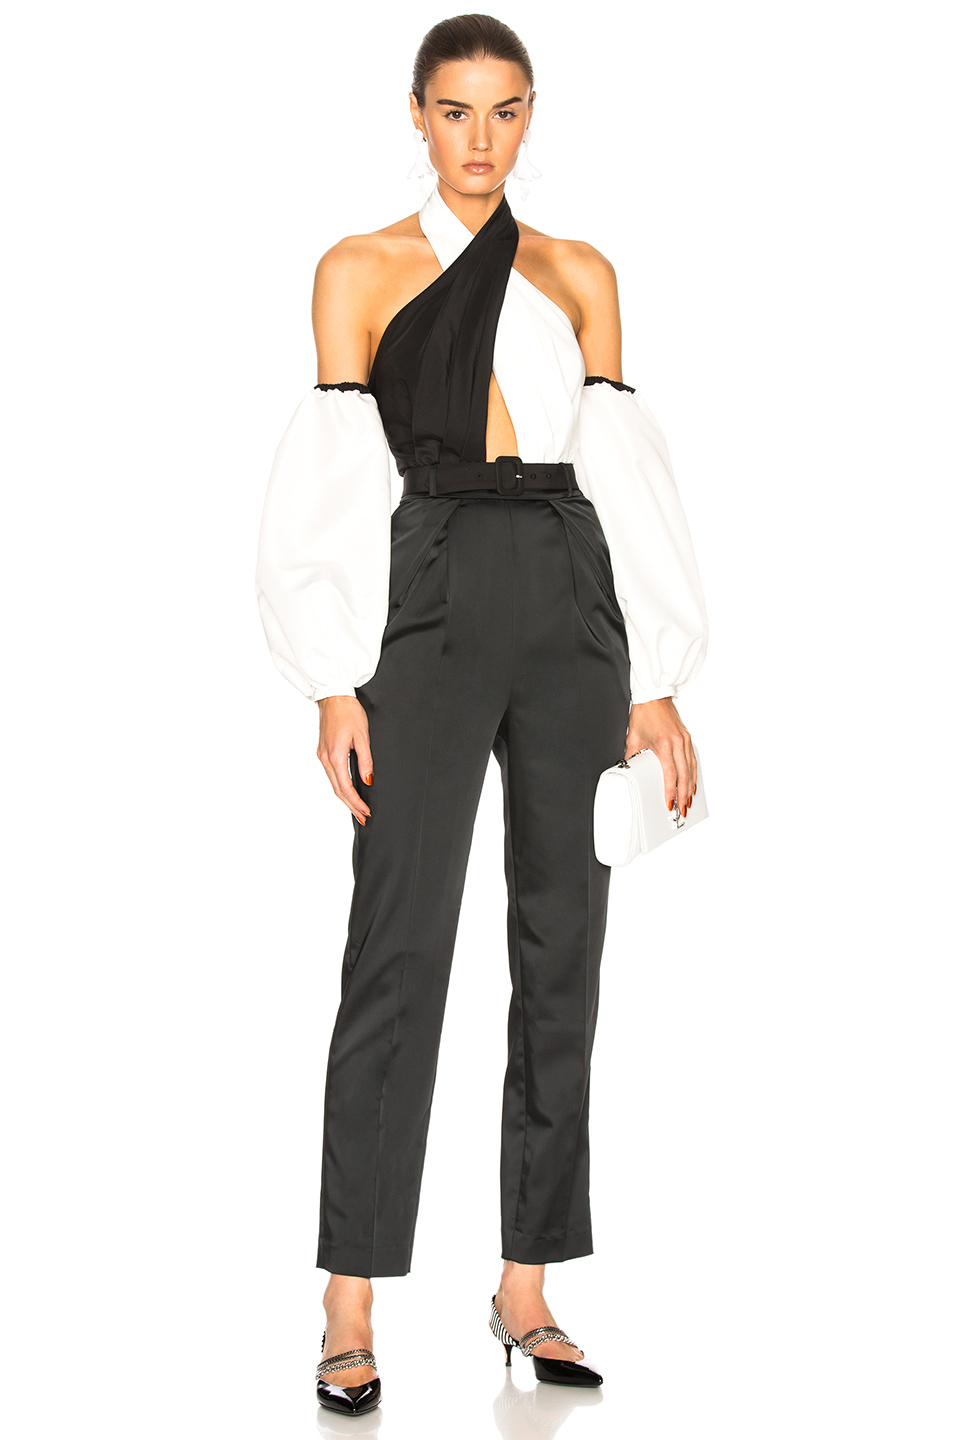 402bf48a973 Buy Original self-portrait Cross Front Monochrome Jumpsuit at ...